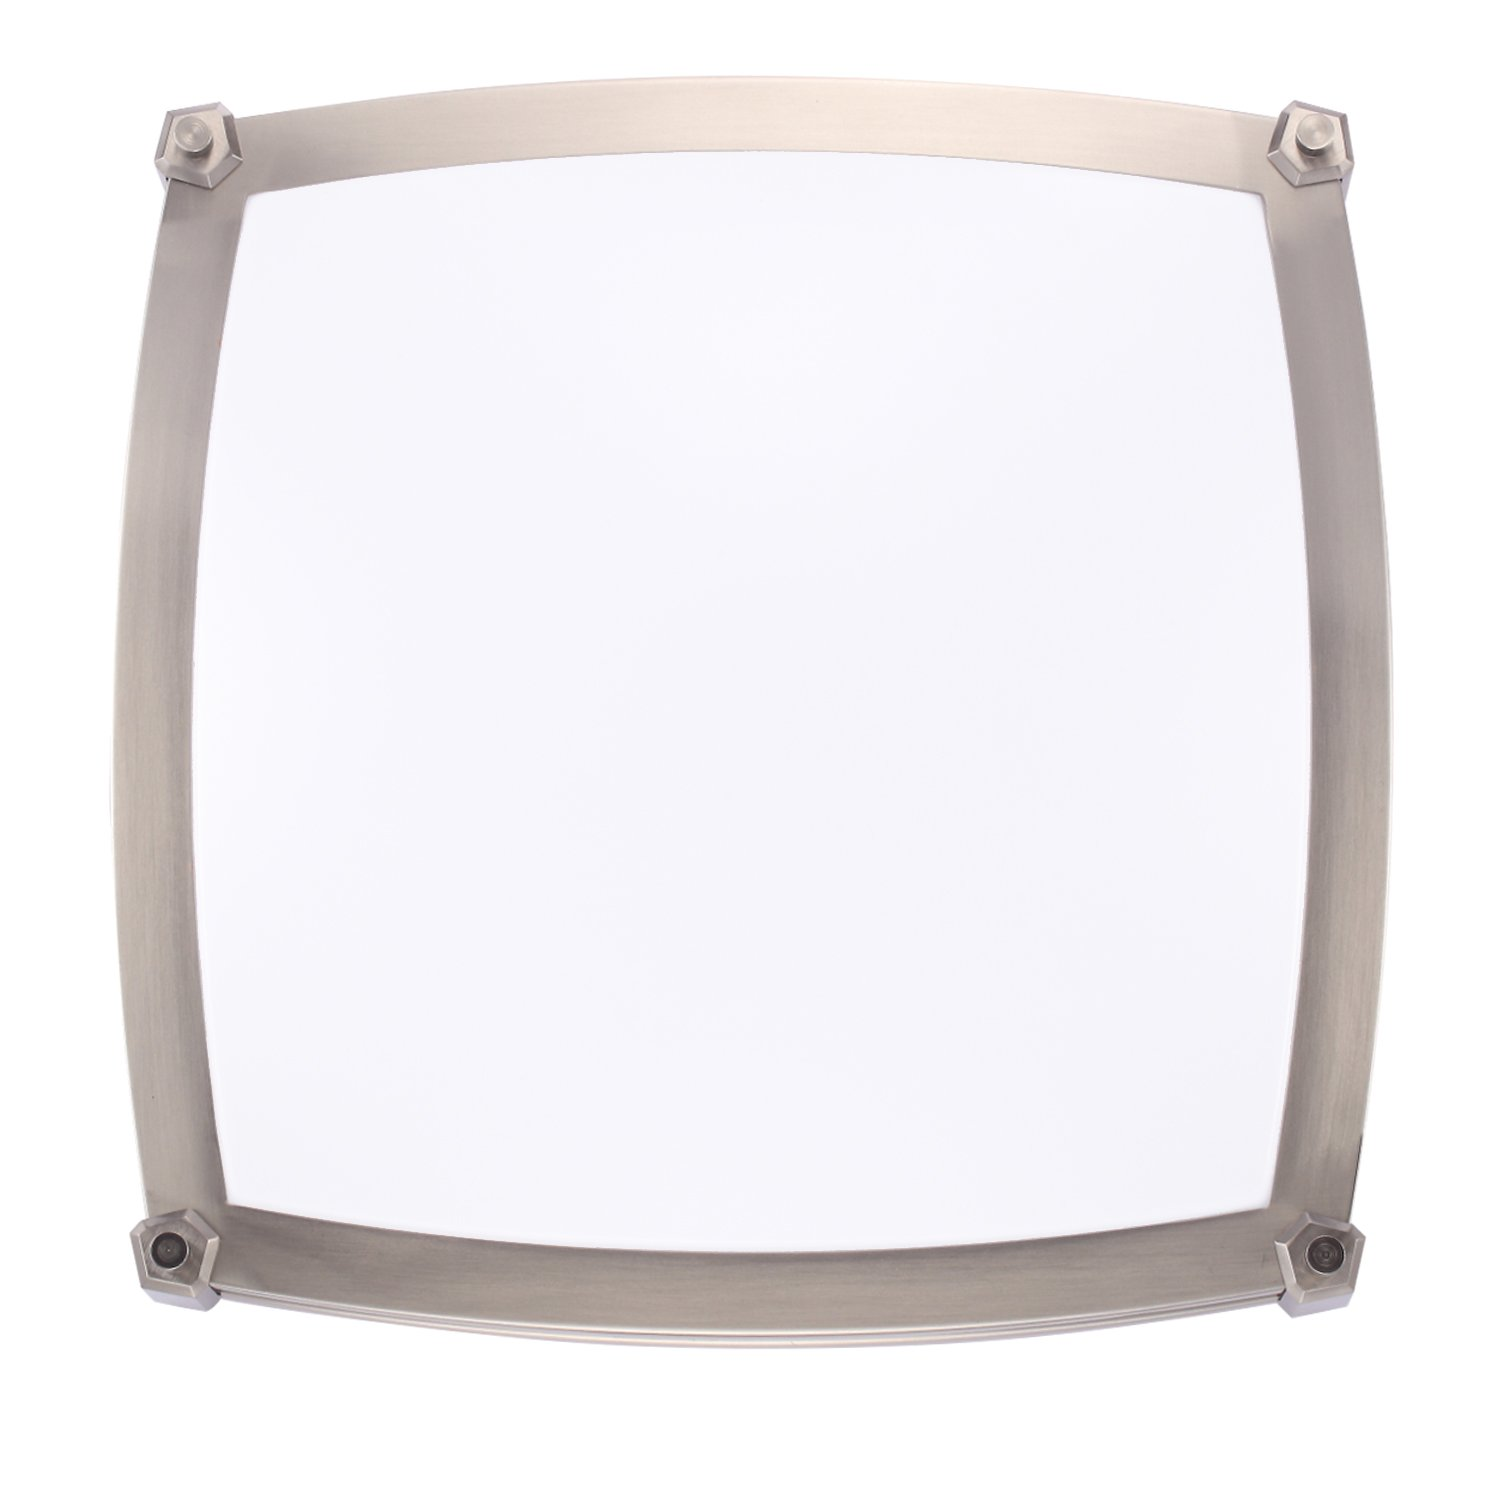 GetInLight LED Flush Mount Ceiling Light, 16-Inch, 25W(125W Equivalent), Brushed Nickel Finish, 4000K(Bright White), Dimmable, Square, Dry Location Rated, ...